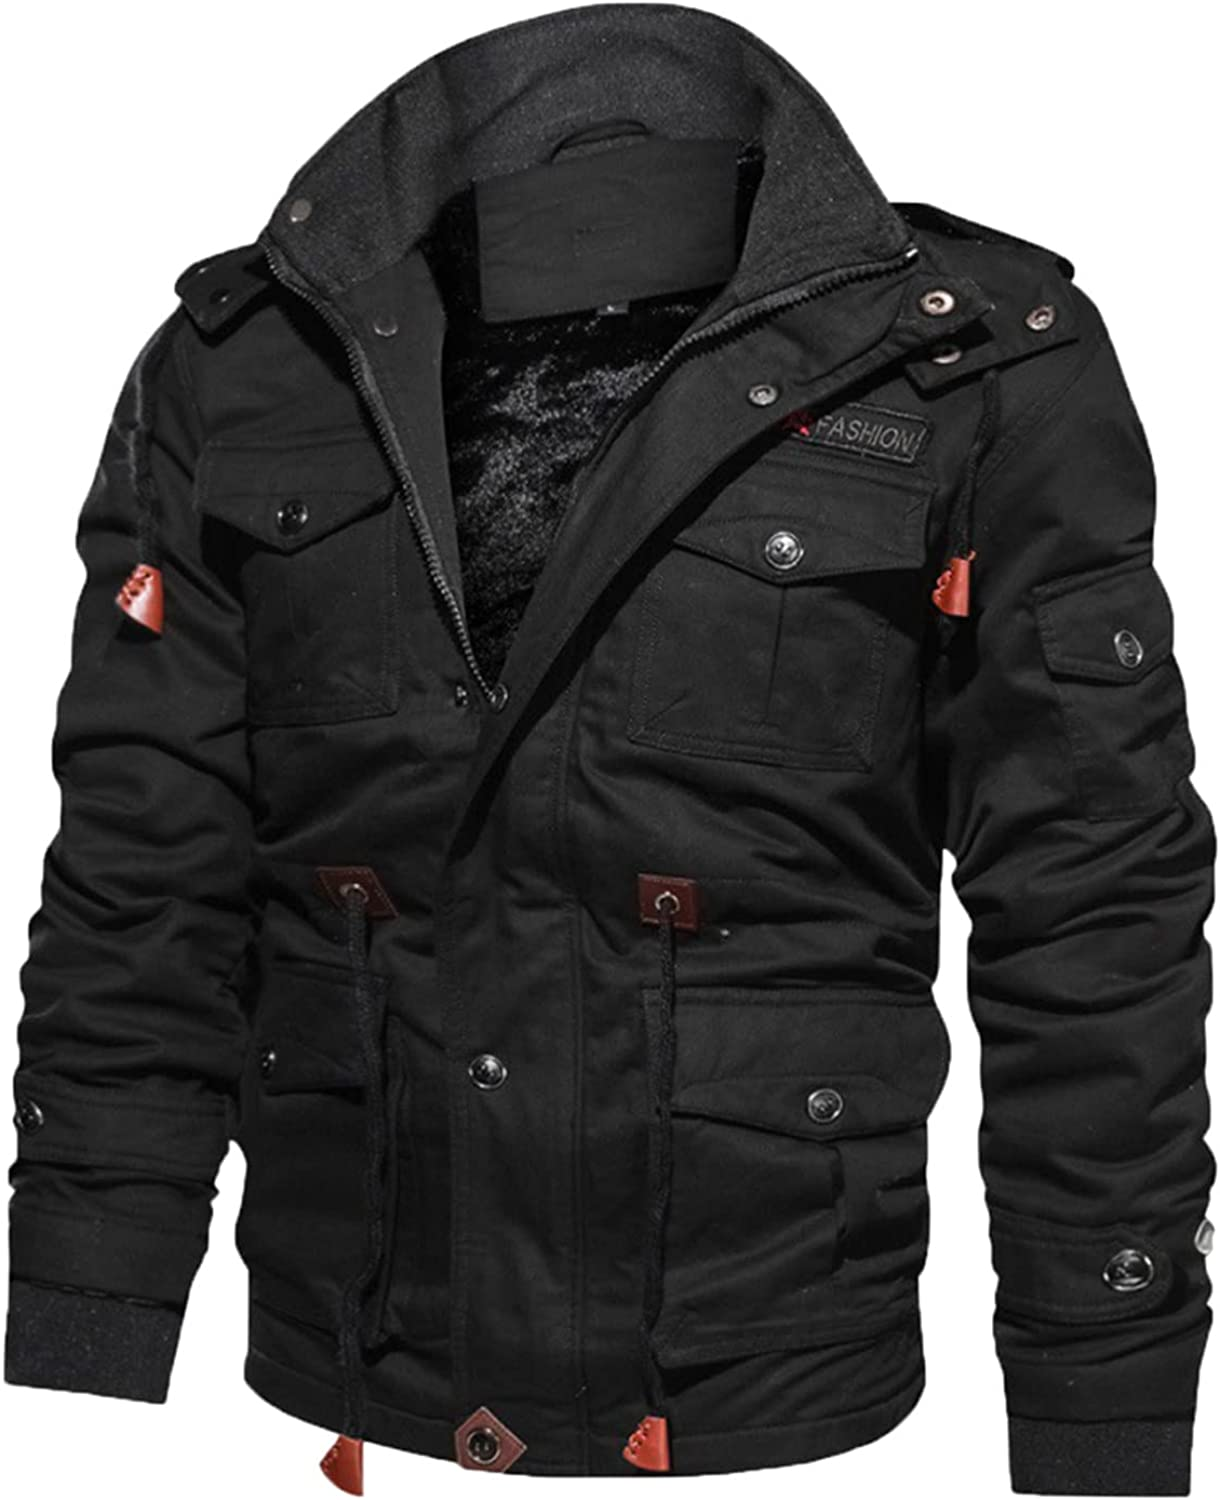 Huangse Men's Plus Size Fleece Lined Multi Pockets Zip Up Stand Collar Military Jackets Windbreaker Padded Bomber Jacket